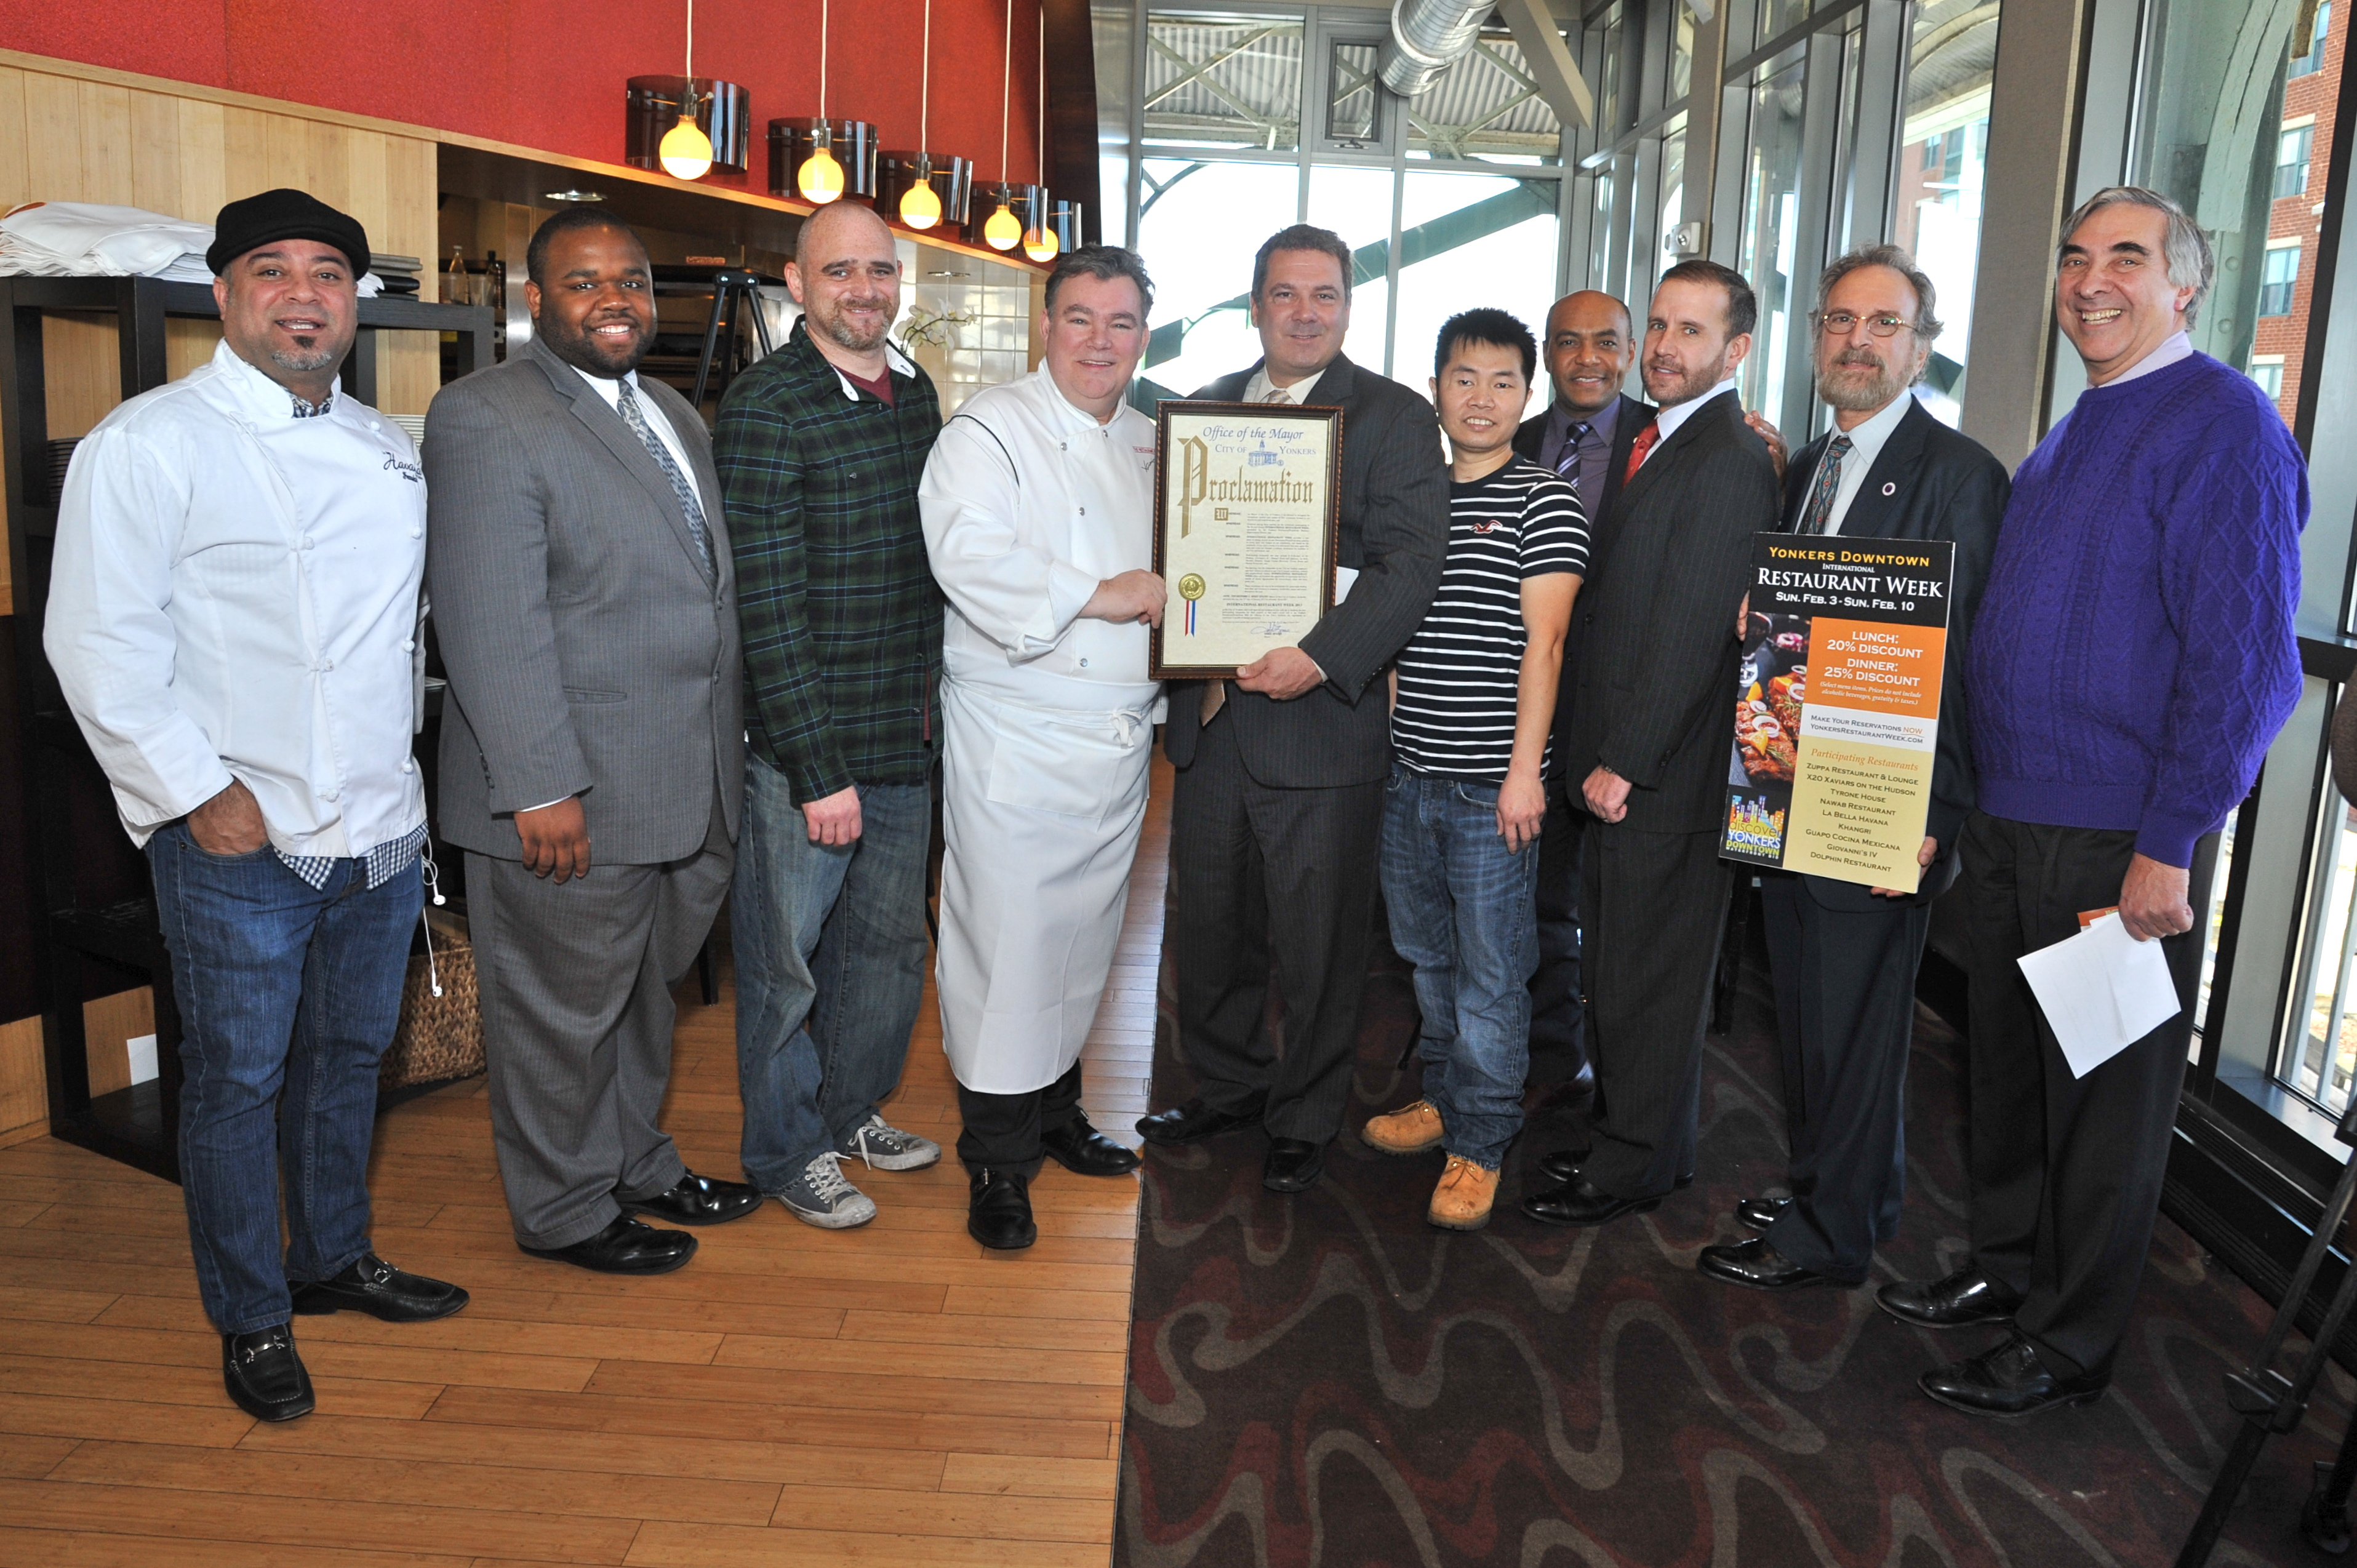 City officials and restaurant owners celebrated the kick-off the Second Annual Yonkers Downtown Business Improvement District's International Restaurant Week.